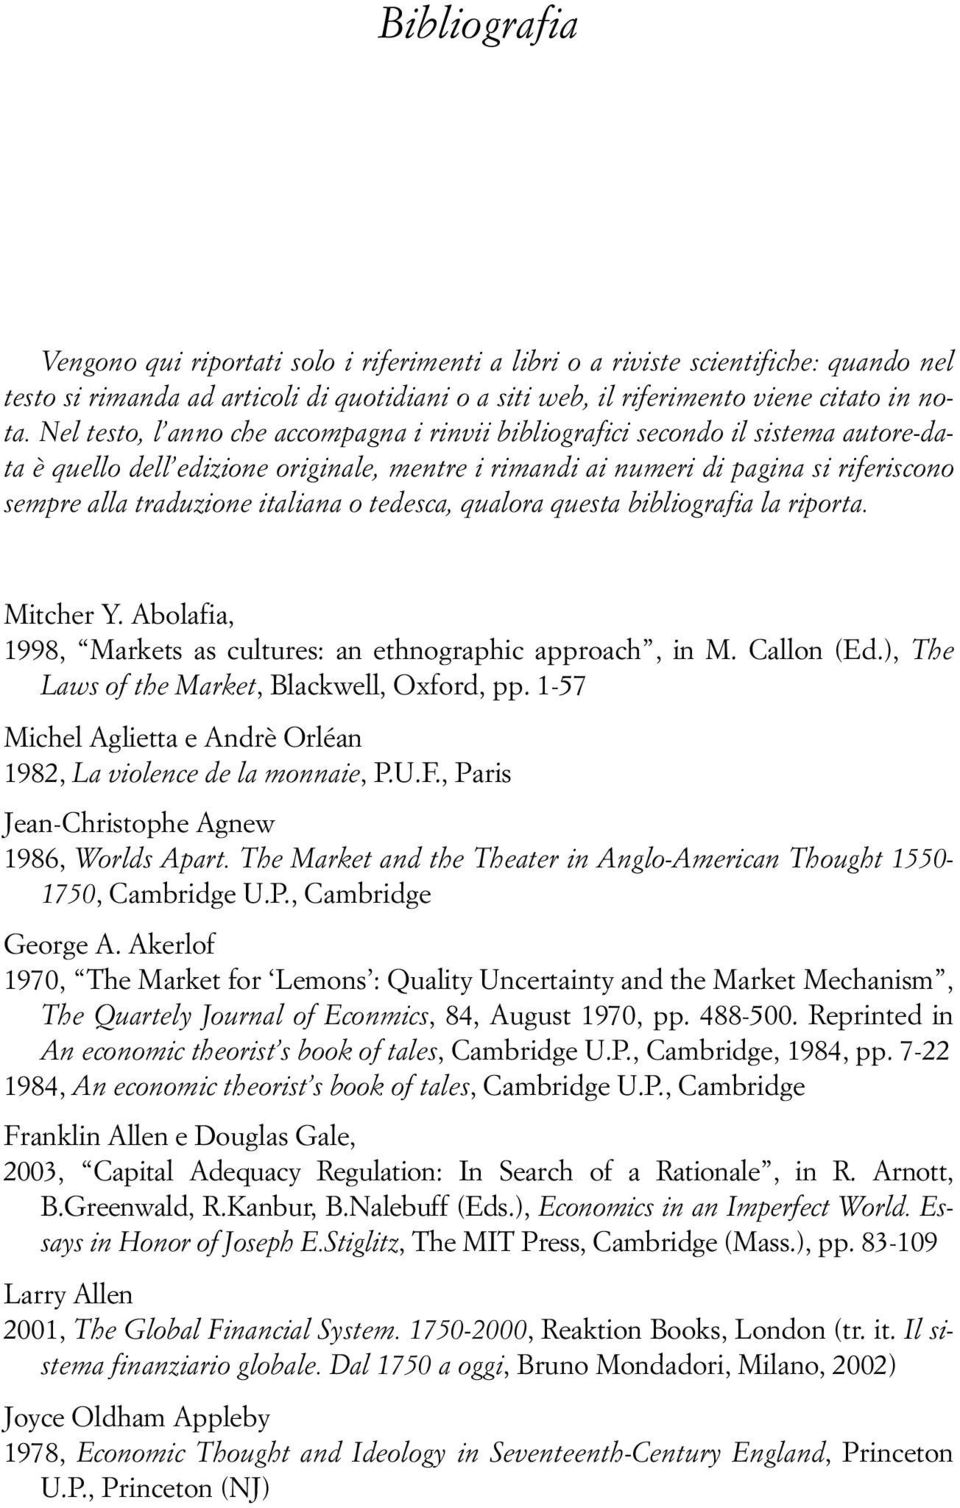 italiana o tedesca, qualora questa bibliografia la riporta. Mitcher Y. Abolafia, 1998, Markets as cultures: an ethnographic approach, in M. Callon (Ed.), The Laws of the Market, Blackwell, Oxford, pp.